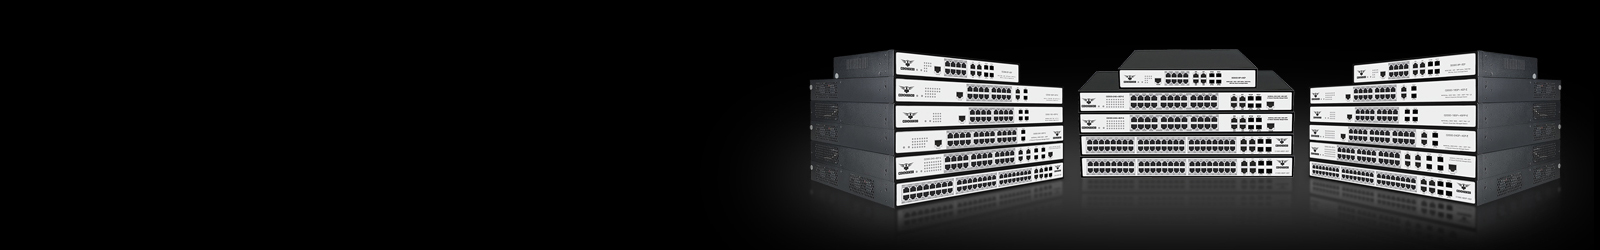 C3000 L3 Managed Switches